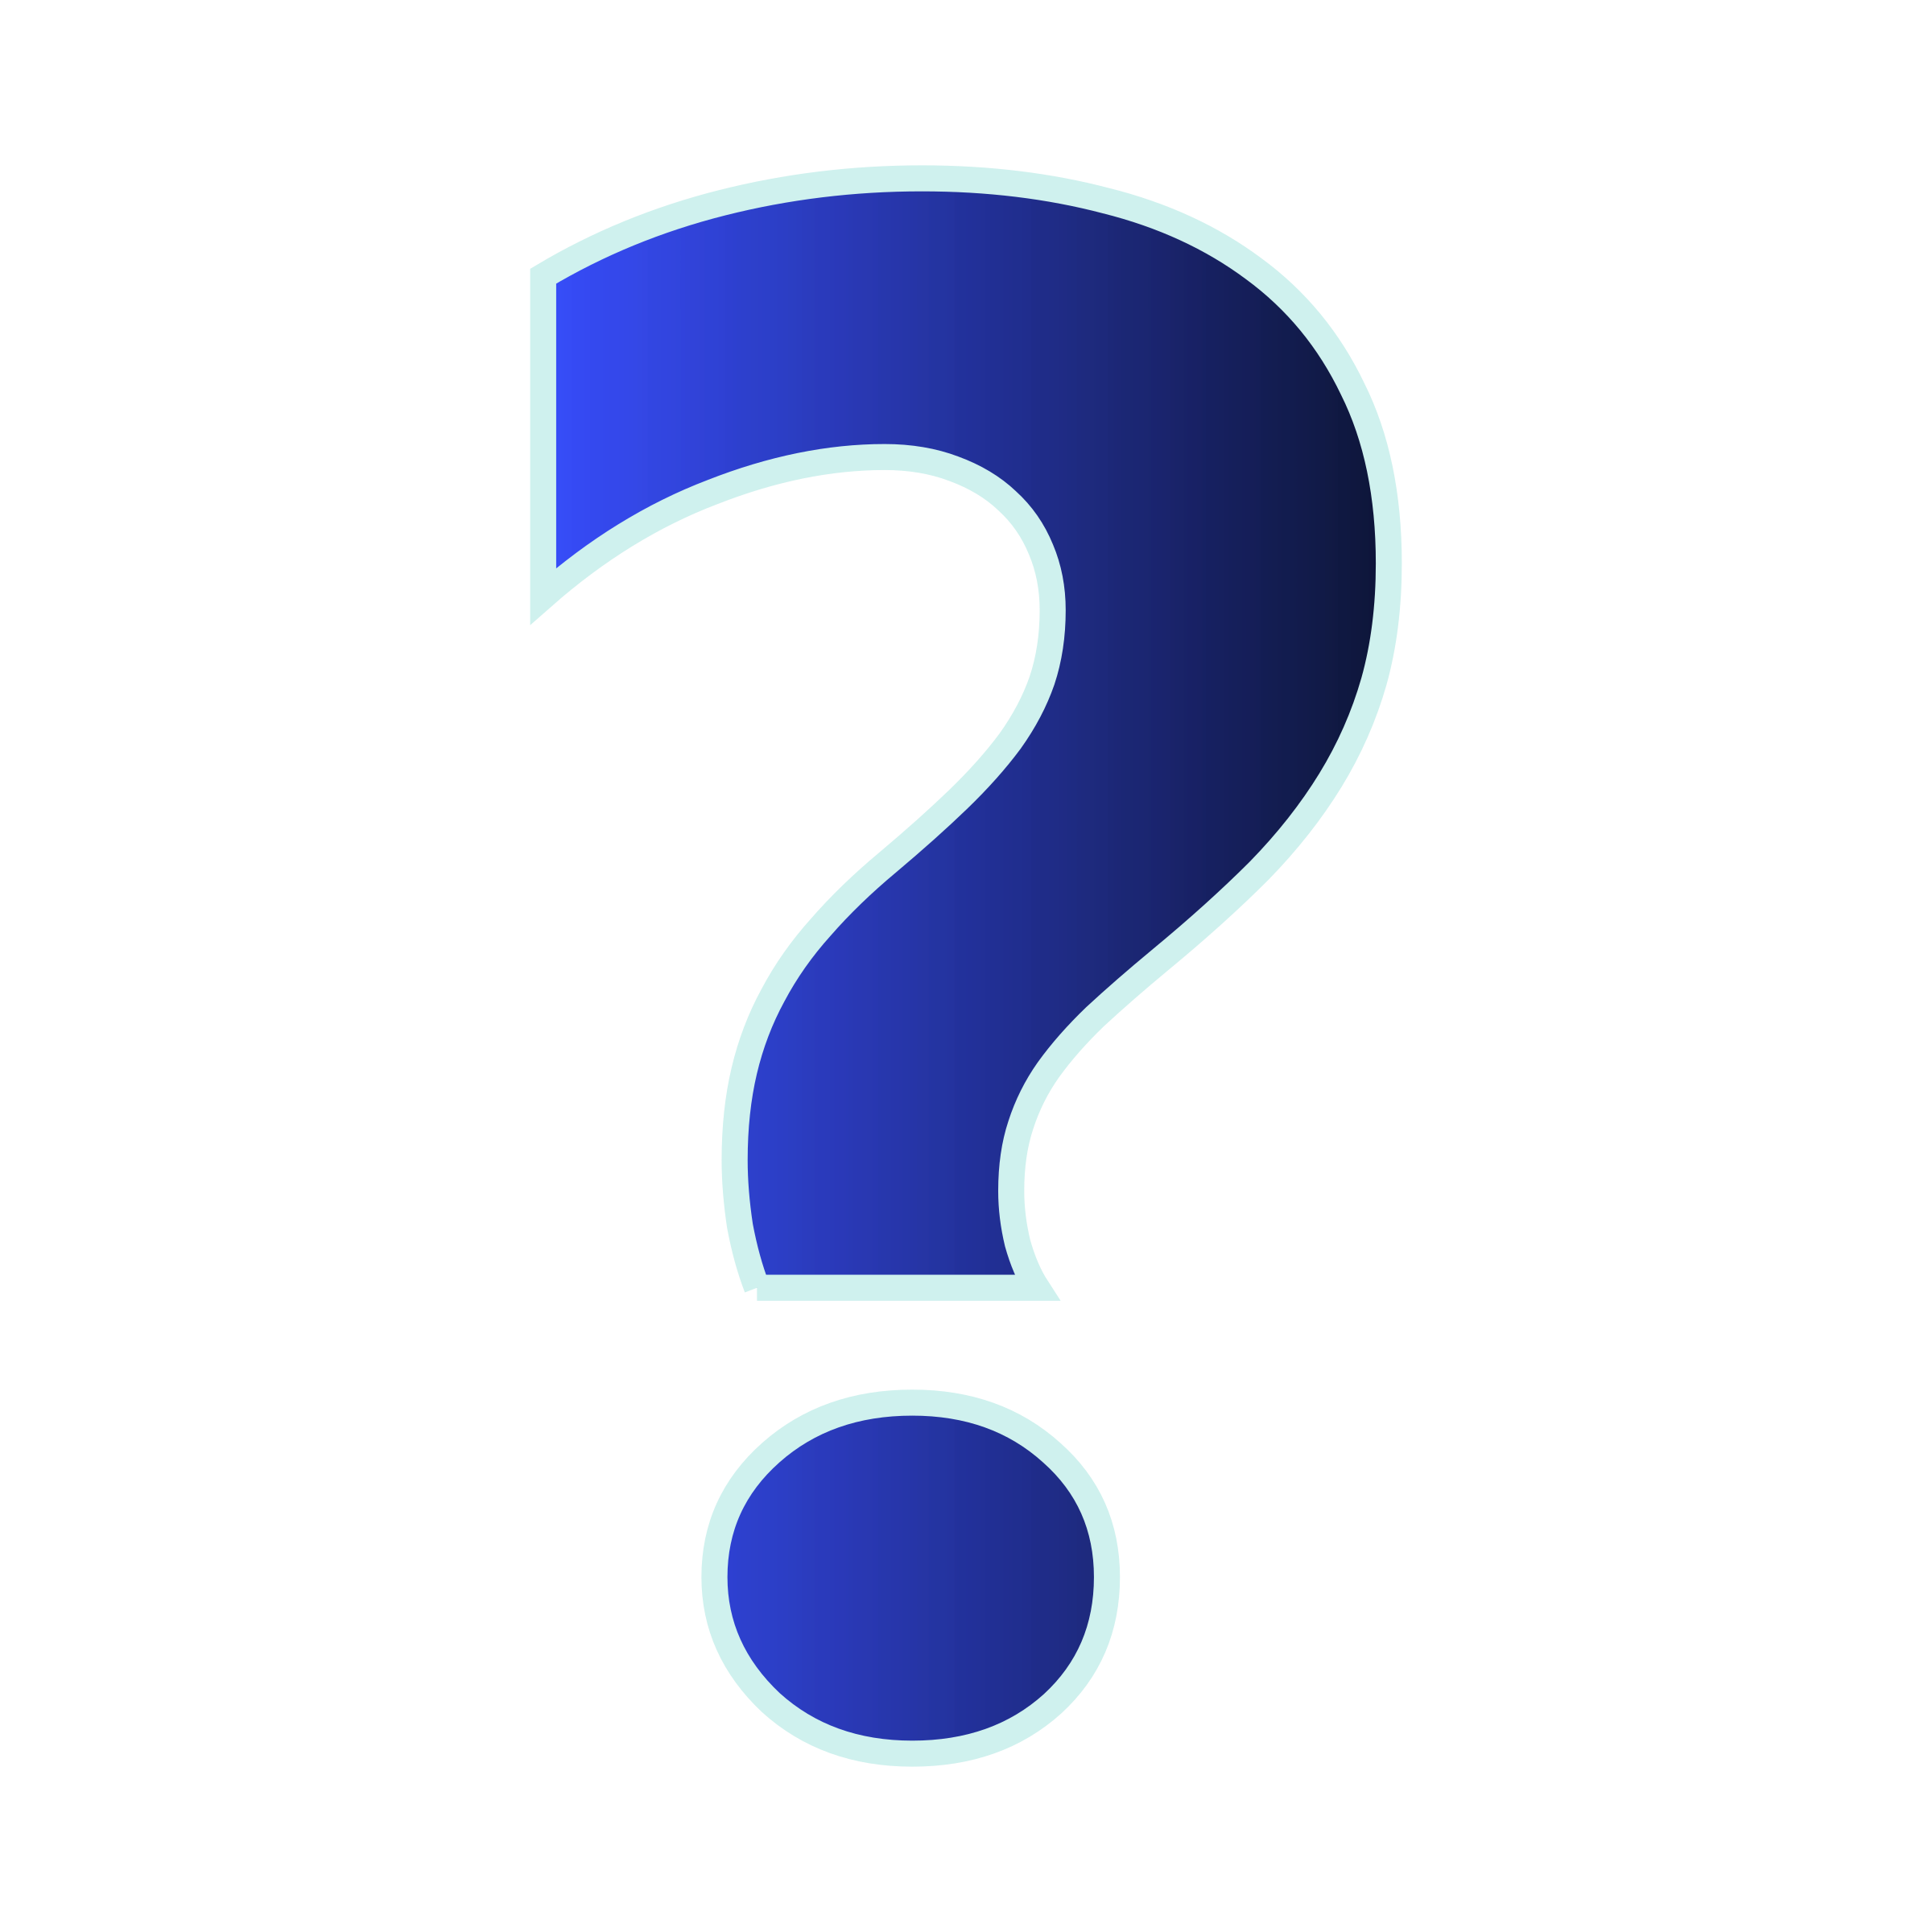 clipart question mark rh openclipart org